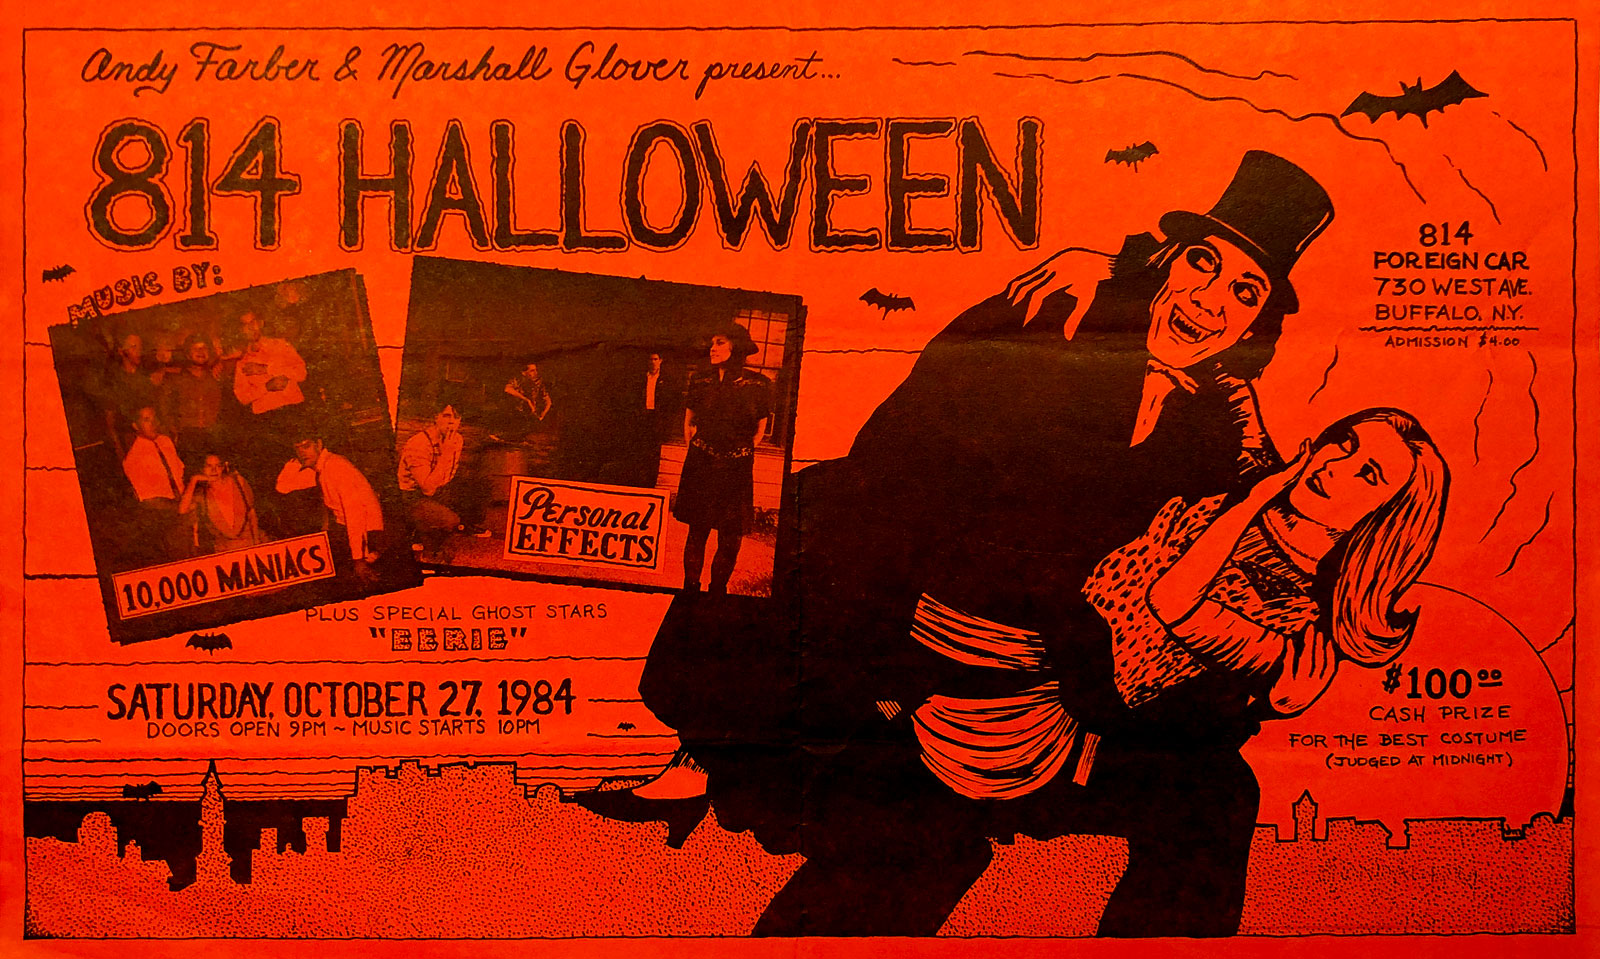 Poster for Halloween gig with Personal Effects and 10,000 Maniacs at Foreign Car Garage in Buffalo, New York on 10.27.1984